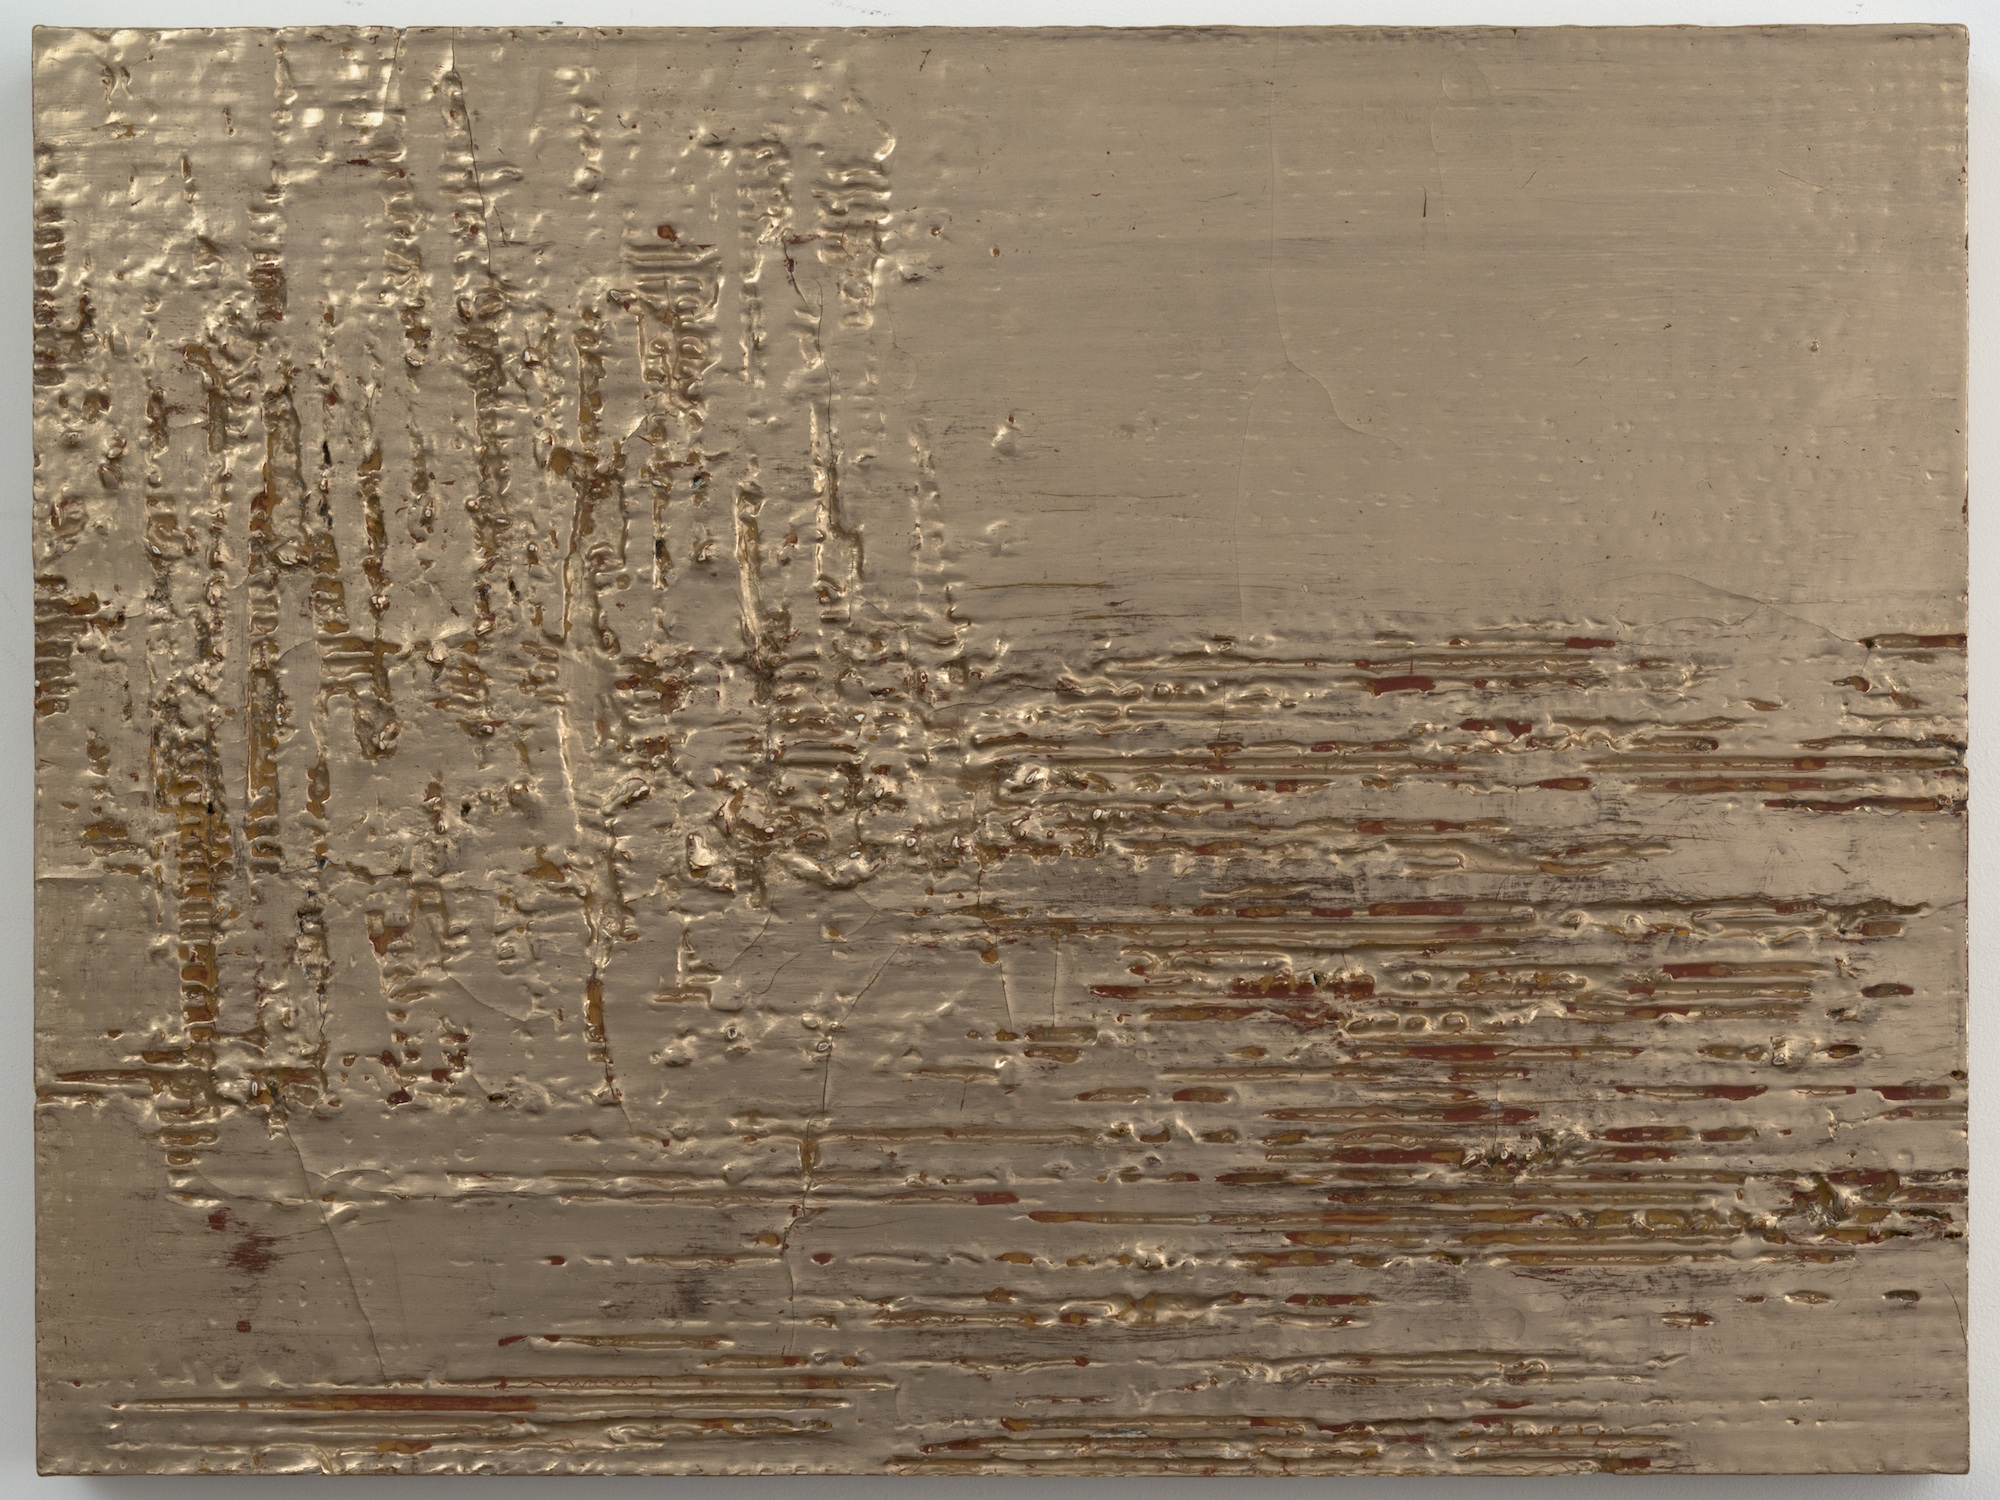 Nancy Lorenz, Moon Gold Cardboard (I), 2013, Cardboard, Clay, Resin On Panel, 18 x 24 in.